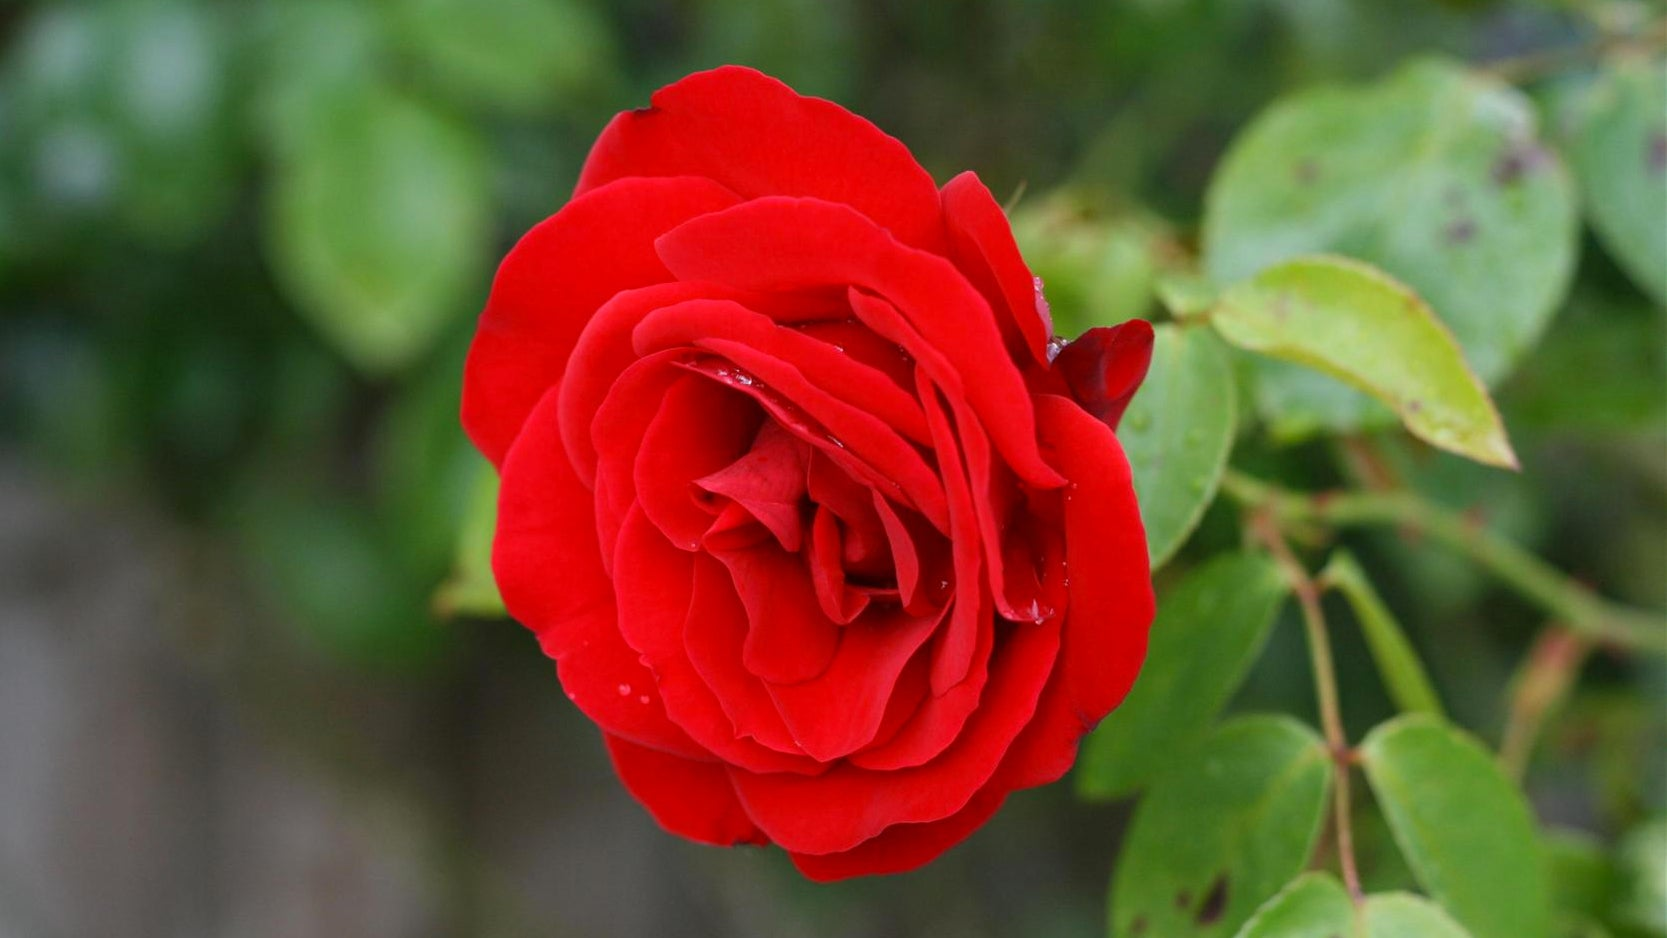 Electronic Roses Could One Day Turn Gardens Into Batteries